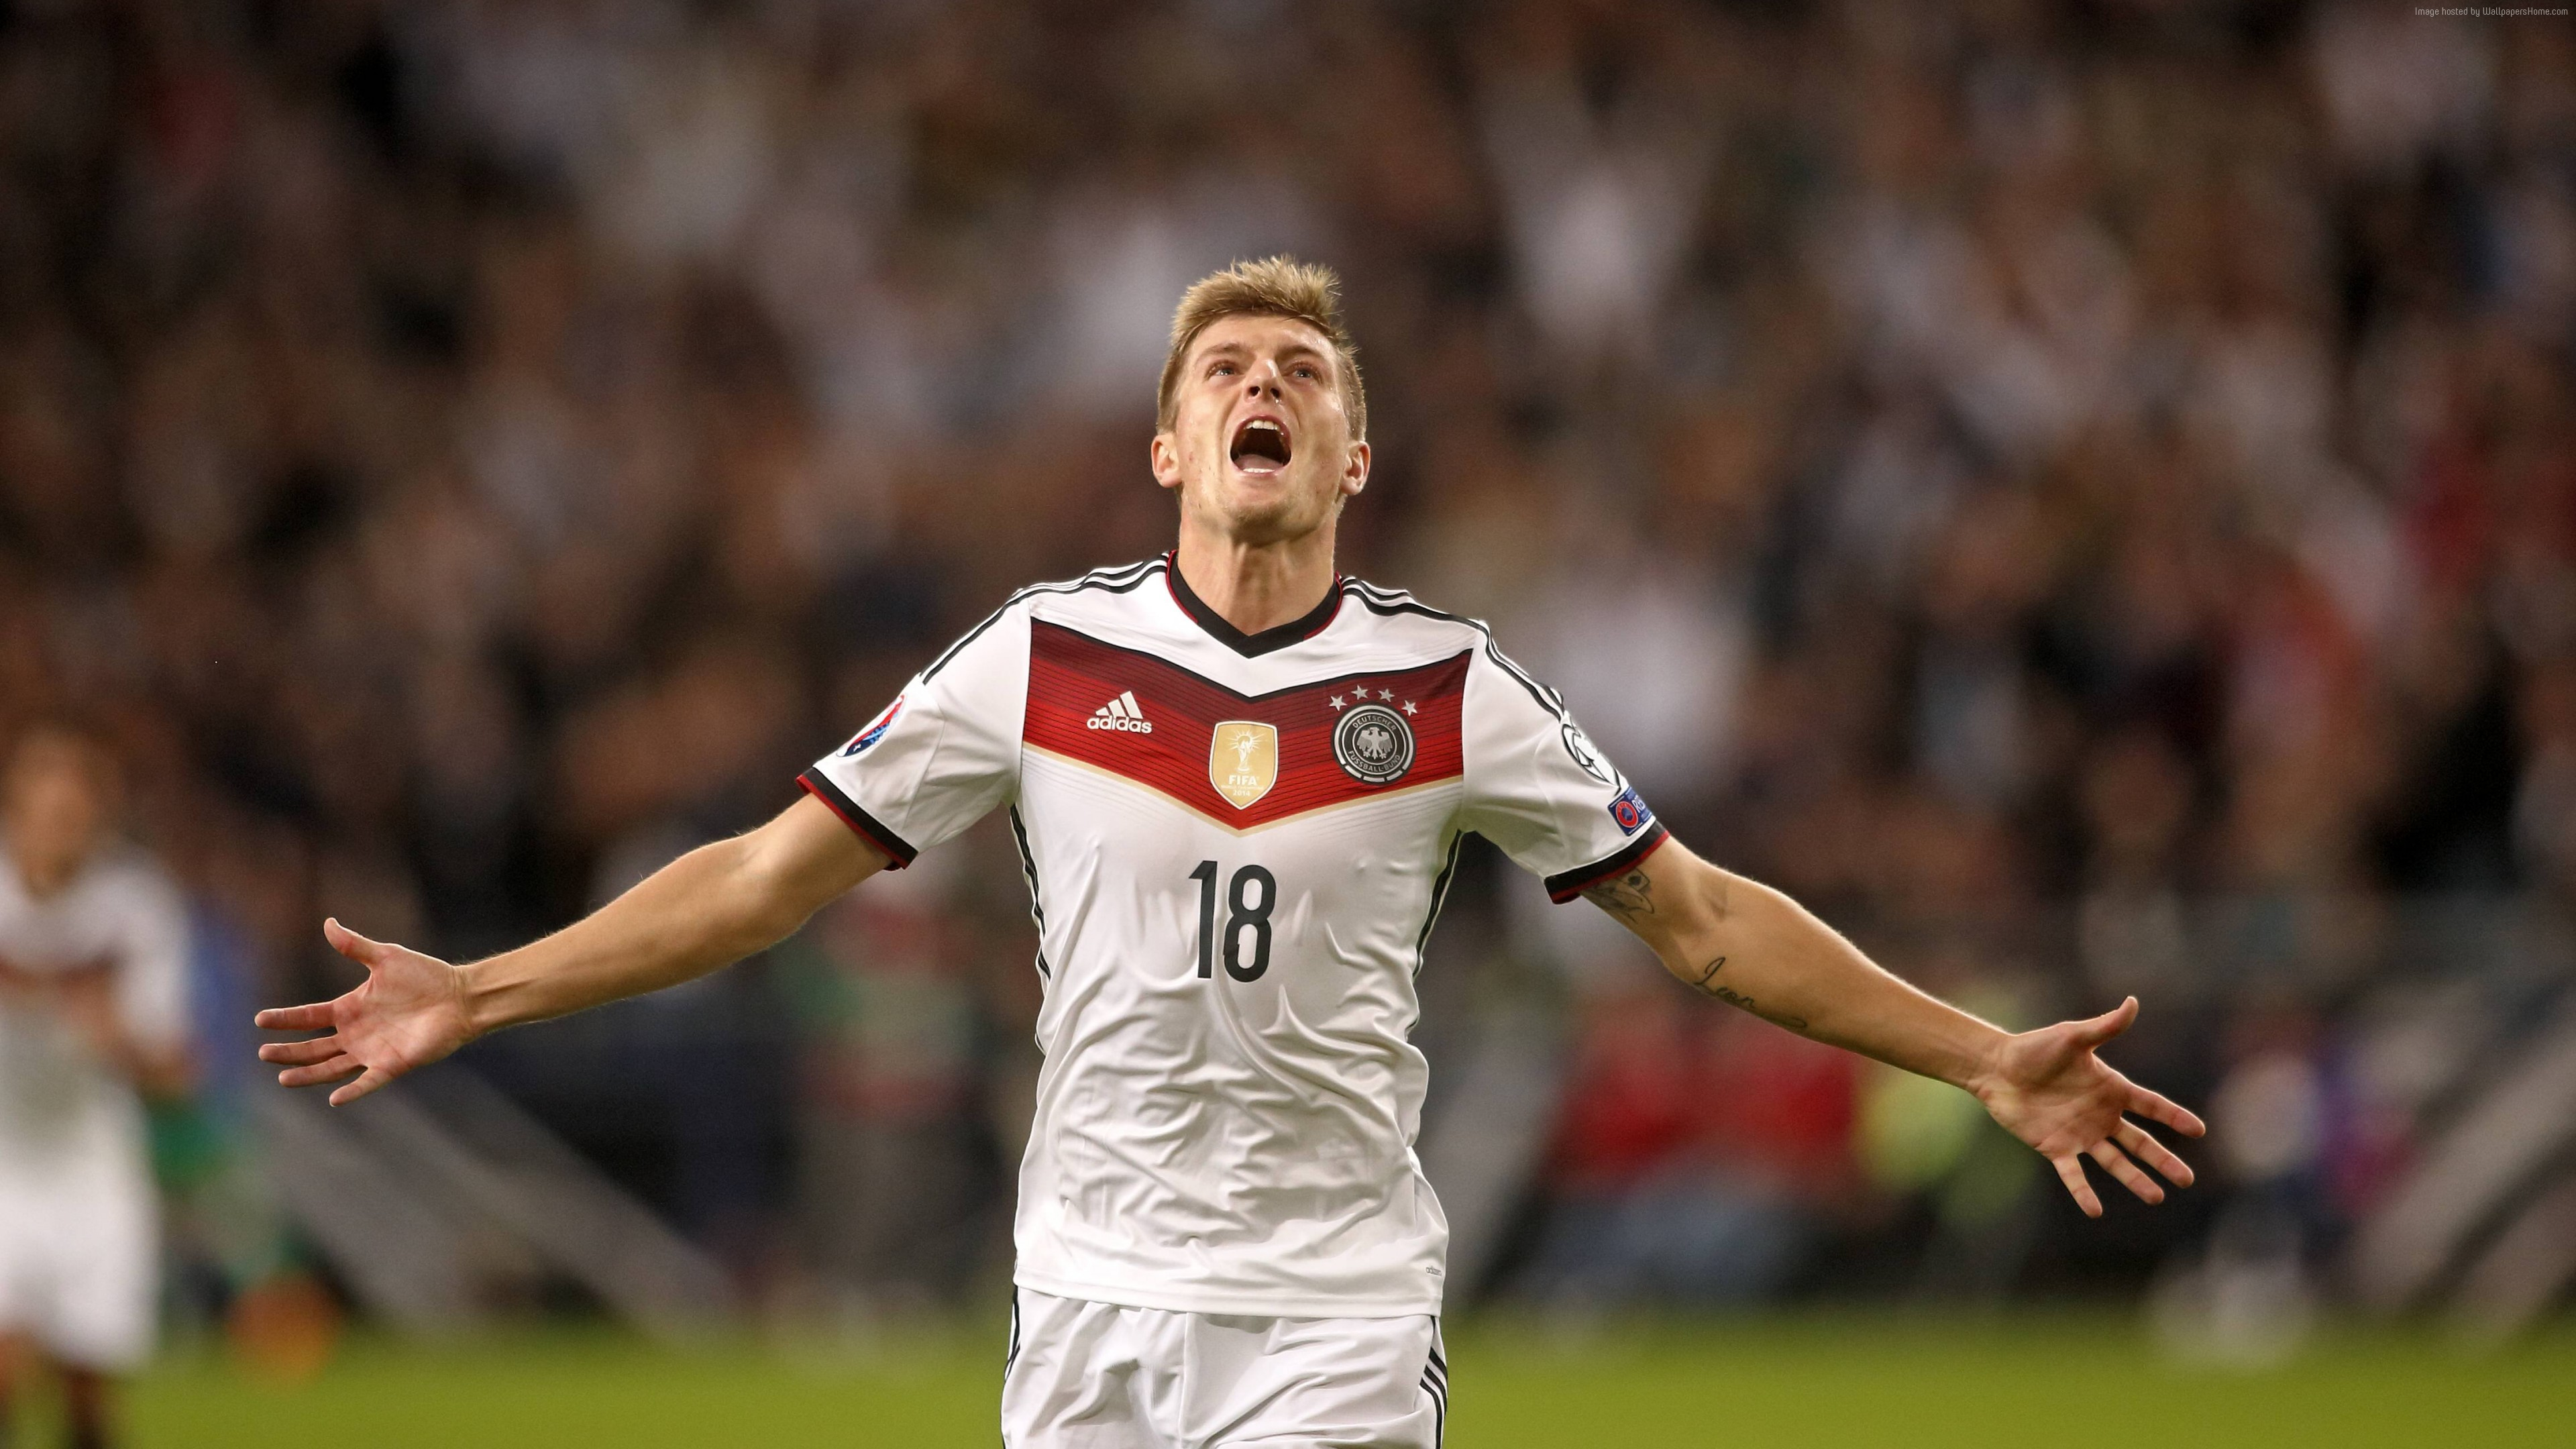 Wallpaper Football, Toni Kroos, soccer, The best players 2015, FIFA, Real Madrid, Midfielder, footballer, Sport